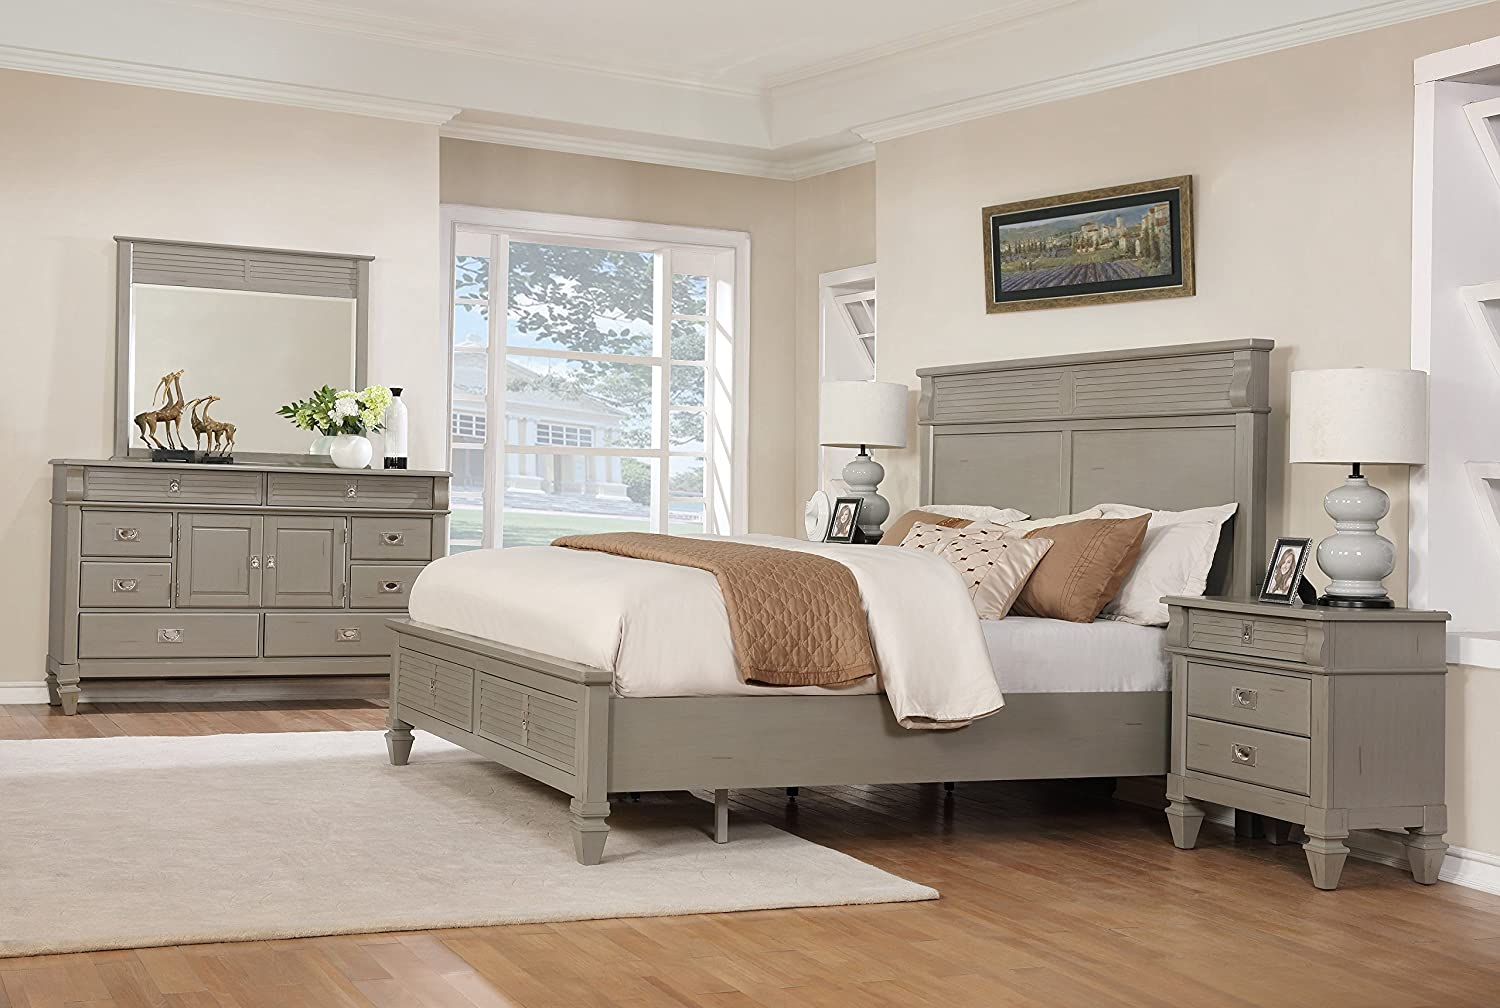 Amazon Com Roundhill Furniture York 204 Solid Wood Construction Bedroom Set With King Size Bed Dresser Mirror And 2 Night Stands Furniture Decor